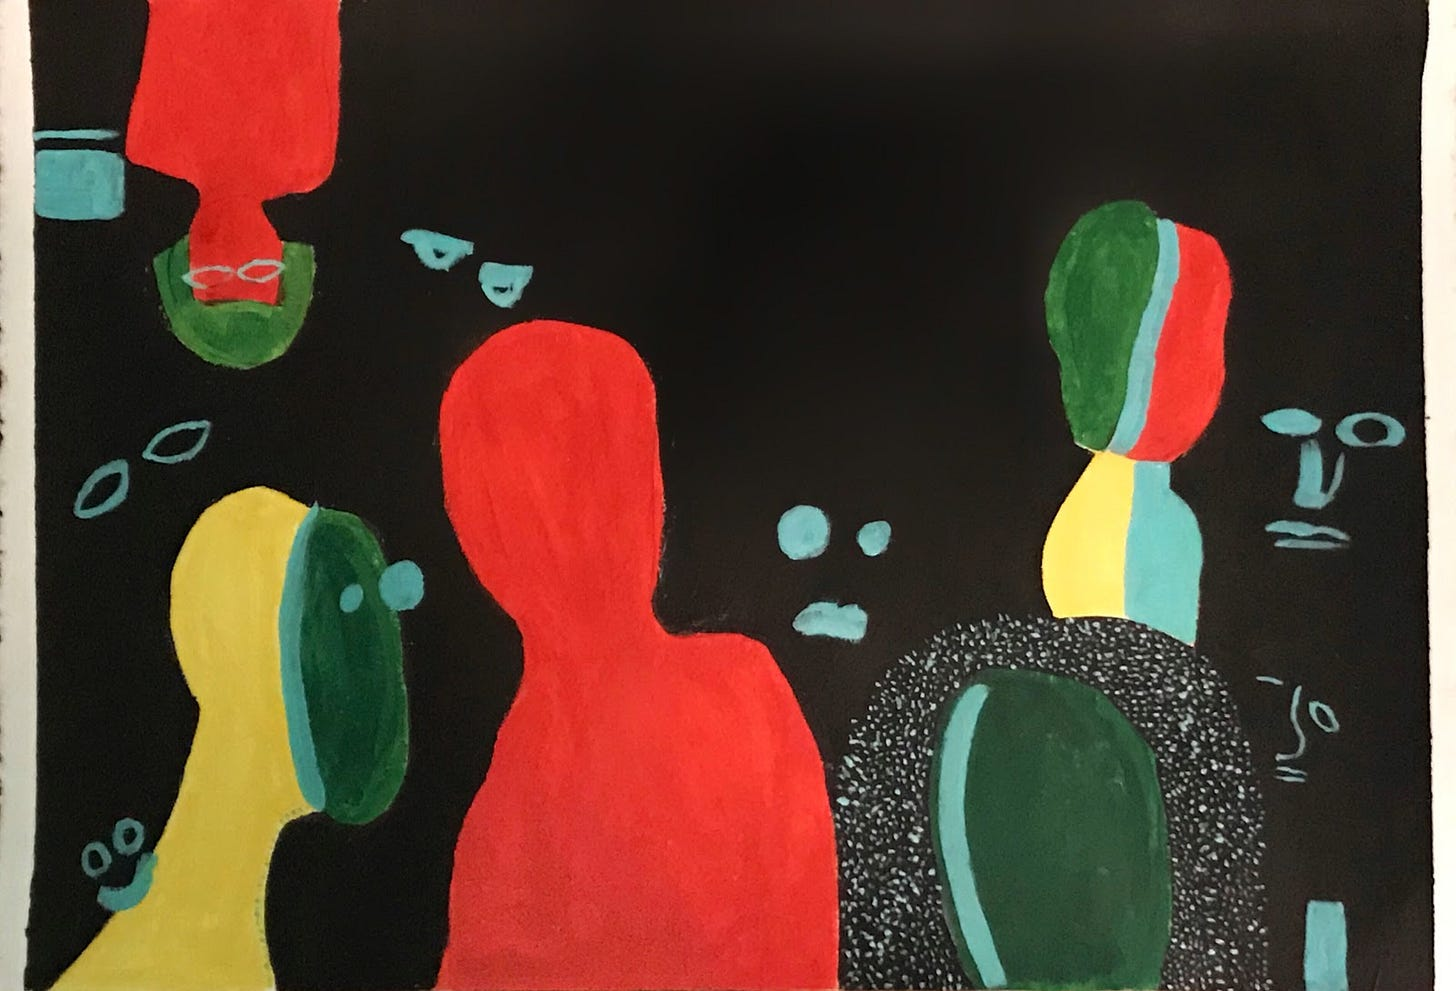 In the black background of the piece, there are ghostly blue expressions staring at us. In the forefront, there are five humanoid figures: on the top left there is an upside down red figure with green hair and glasses, on the bottom left there is a right side up figure with a yellow back and bluish-green face, in the middle of the frame there is a fully red figure with no facial features, on the right bottom corner there is a dark green figure with spotted black hair, and finally on the top right there is a multicolored figure (green, blue, red, and yellow).